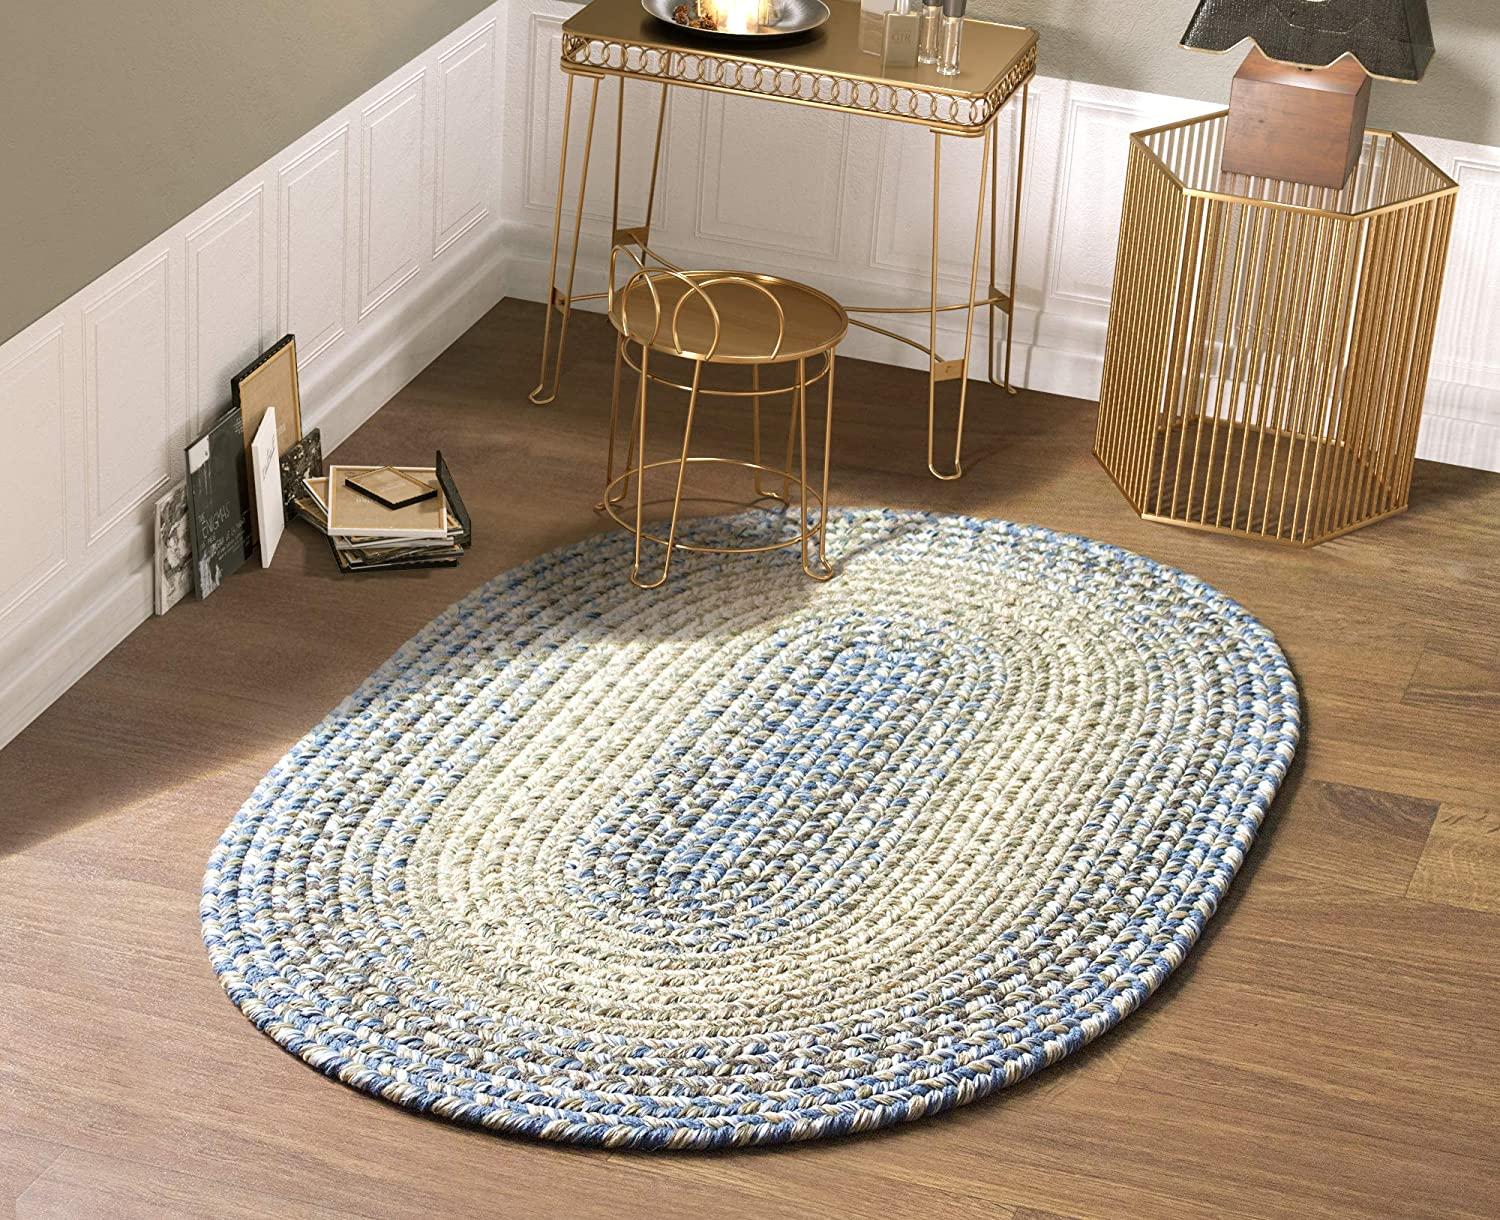 Super Area Rugs Ridgewood Indoor Outdoor Kitchen Braided Rug Blue/Beige RI96, 4